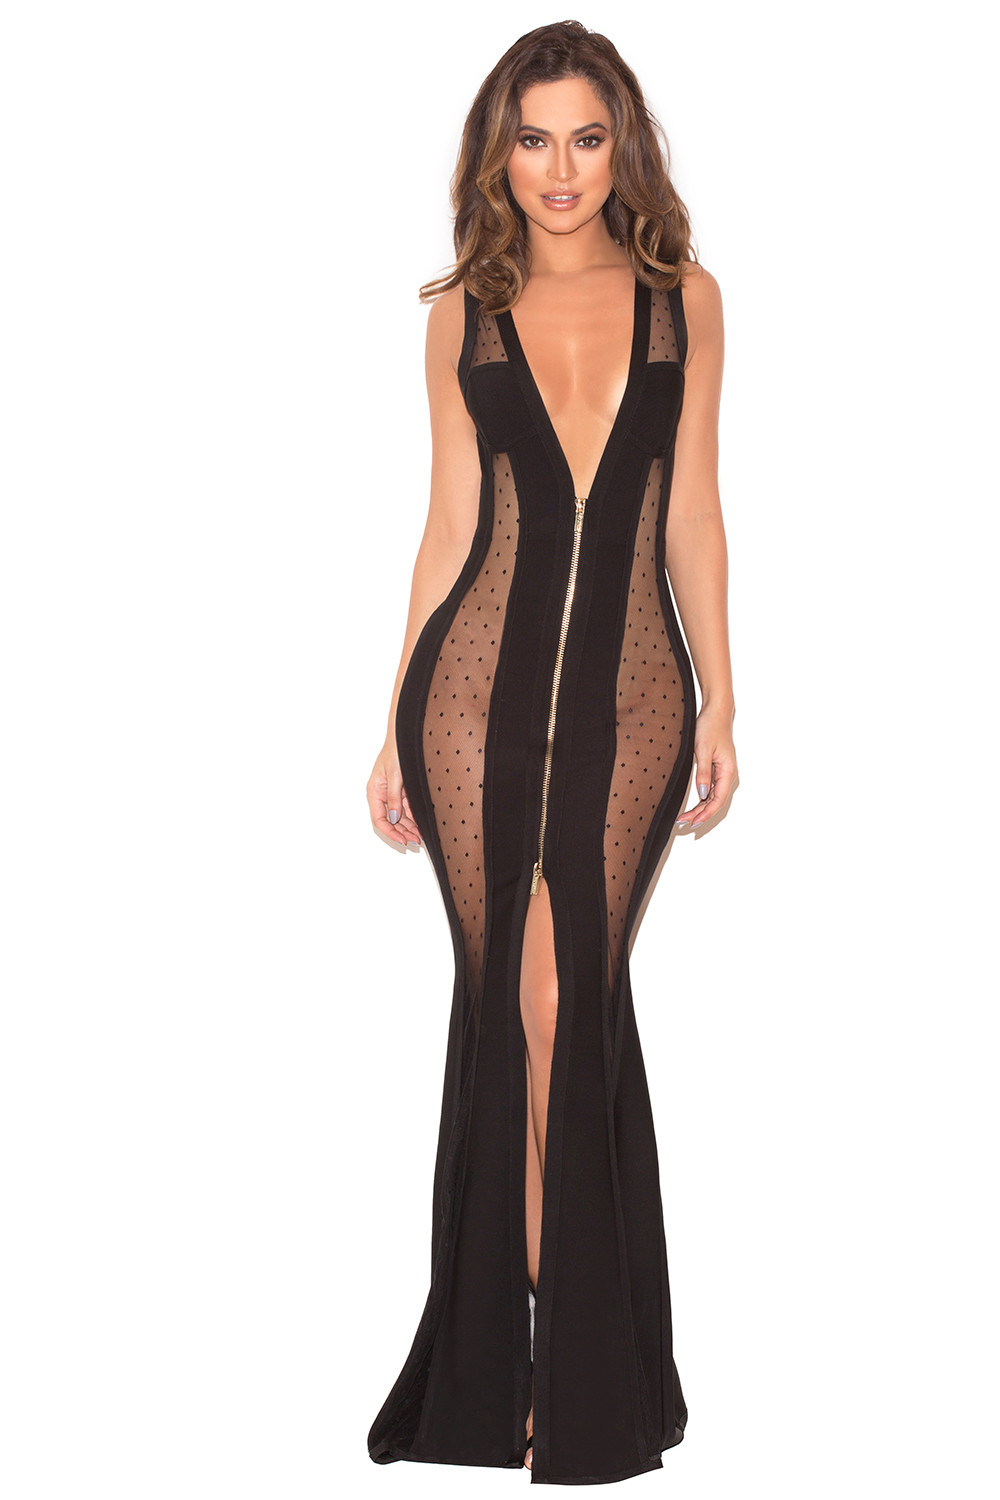 3b3238b47a4 Clothing   Max Dresses    Margeaux  Black Bandage and Mesh Maxi Dress